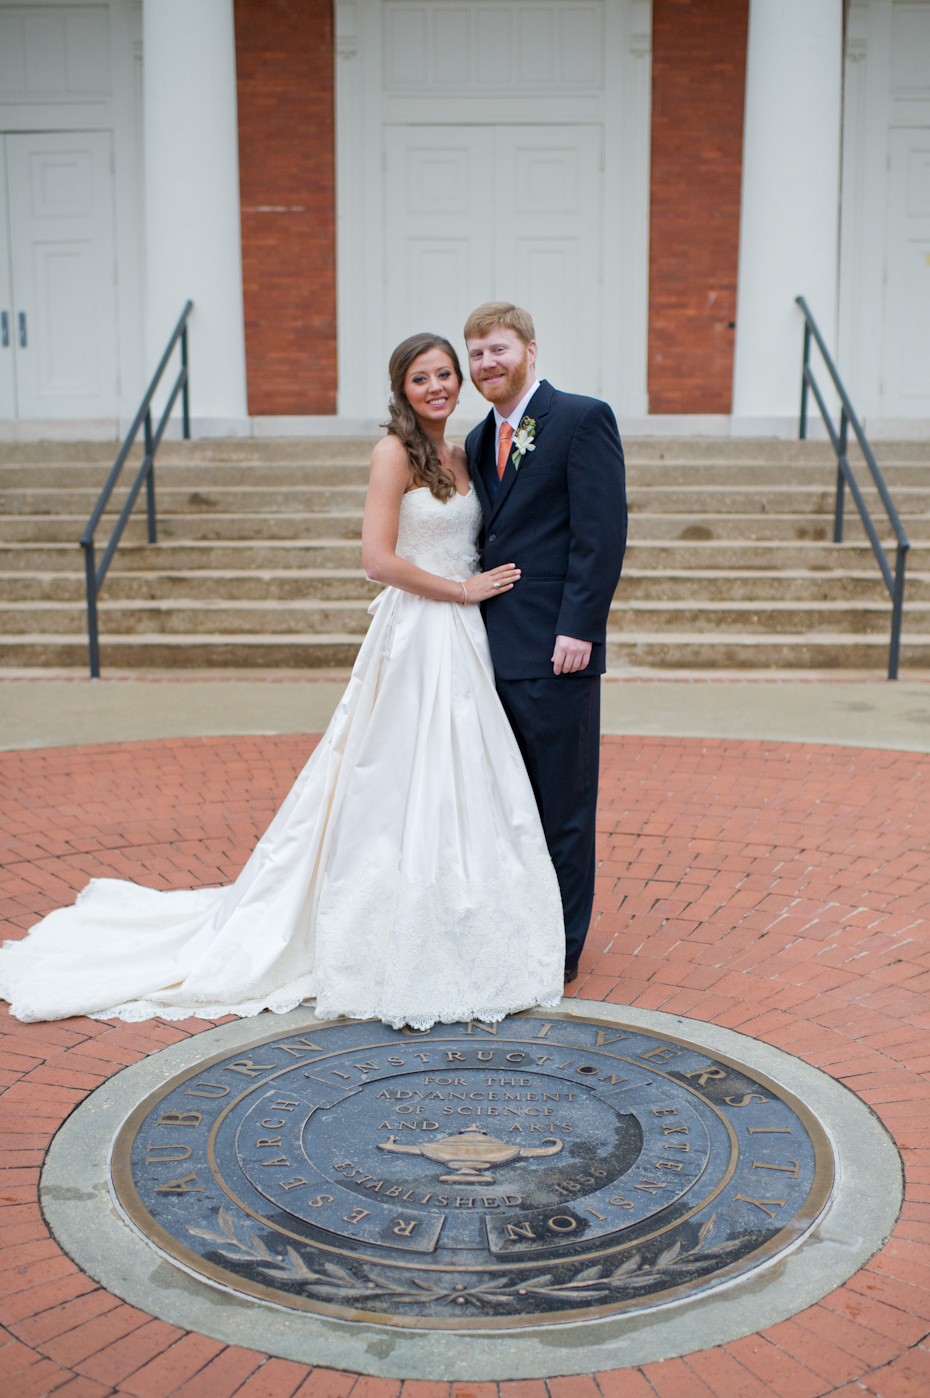 Wedding at Auburn University